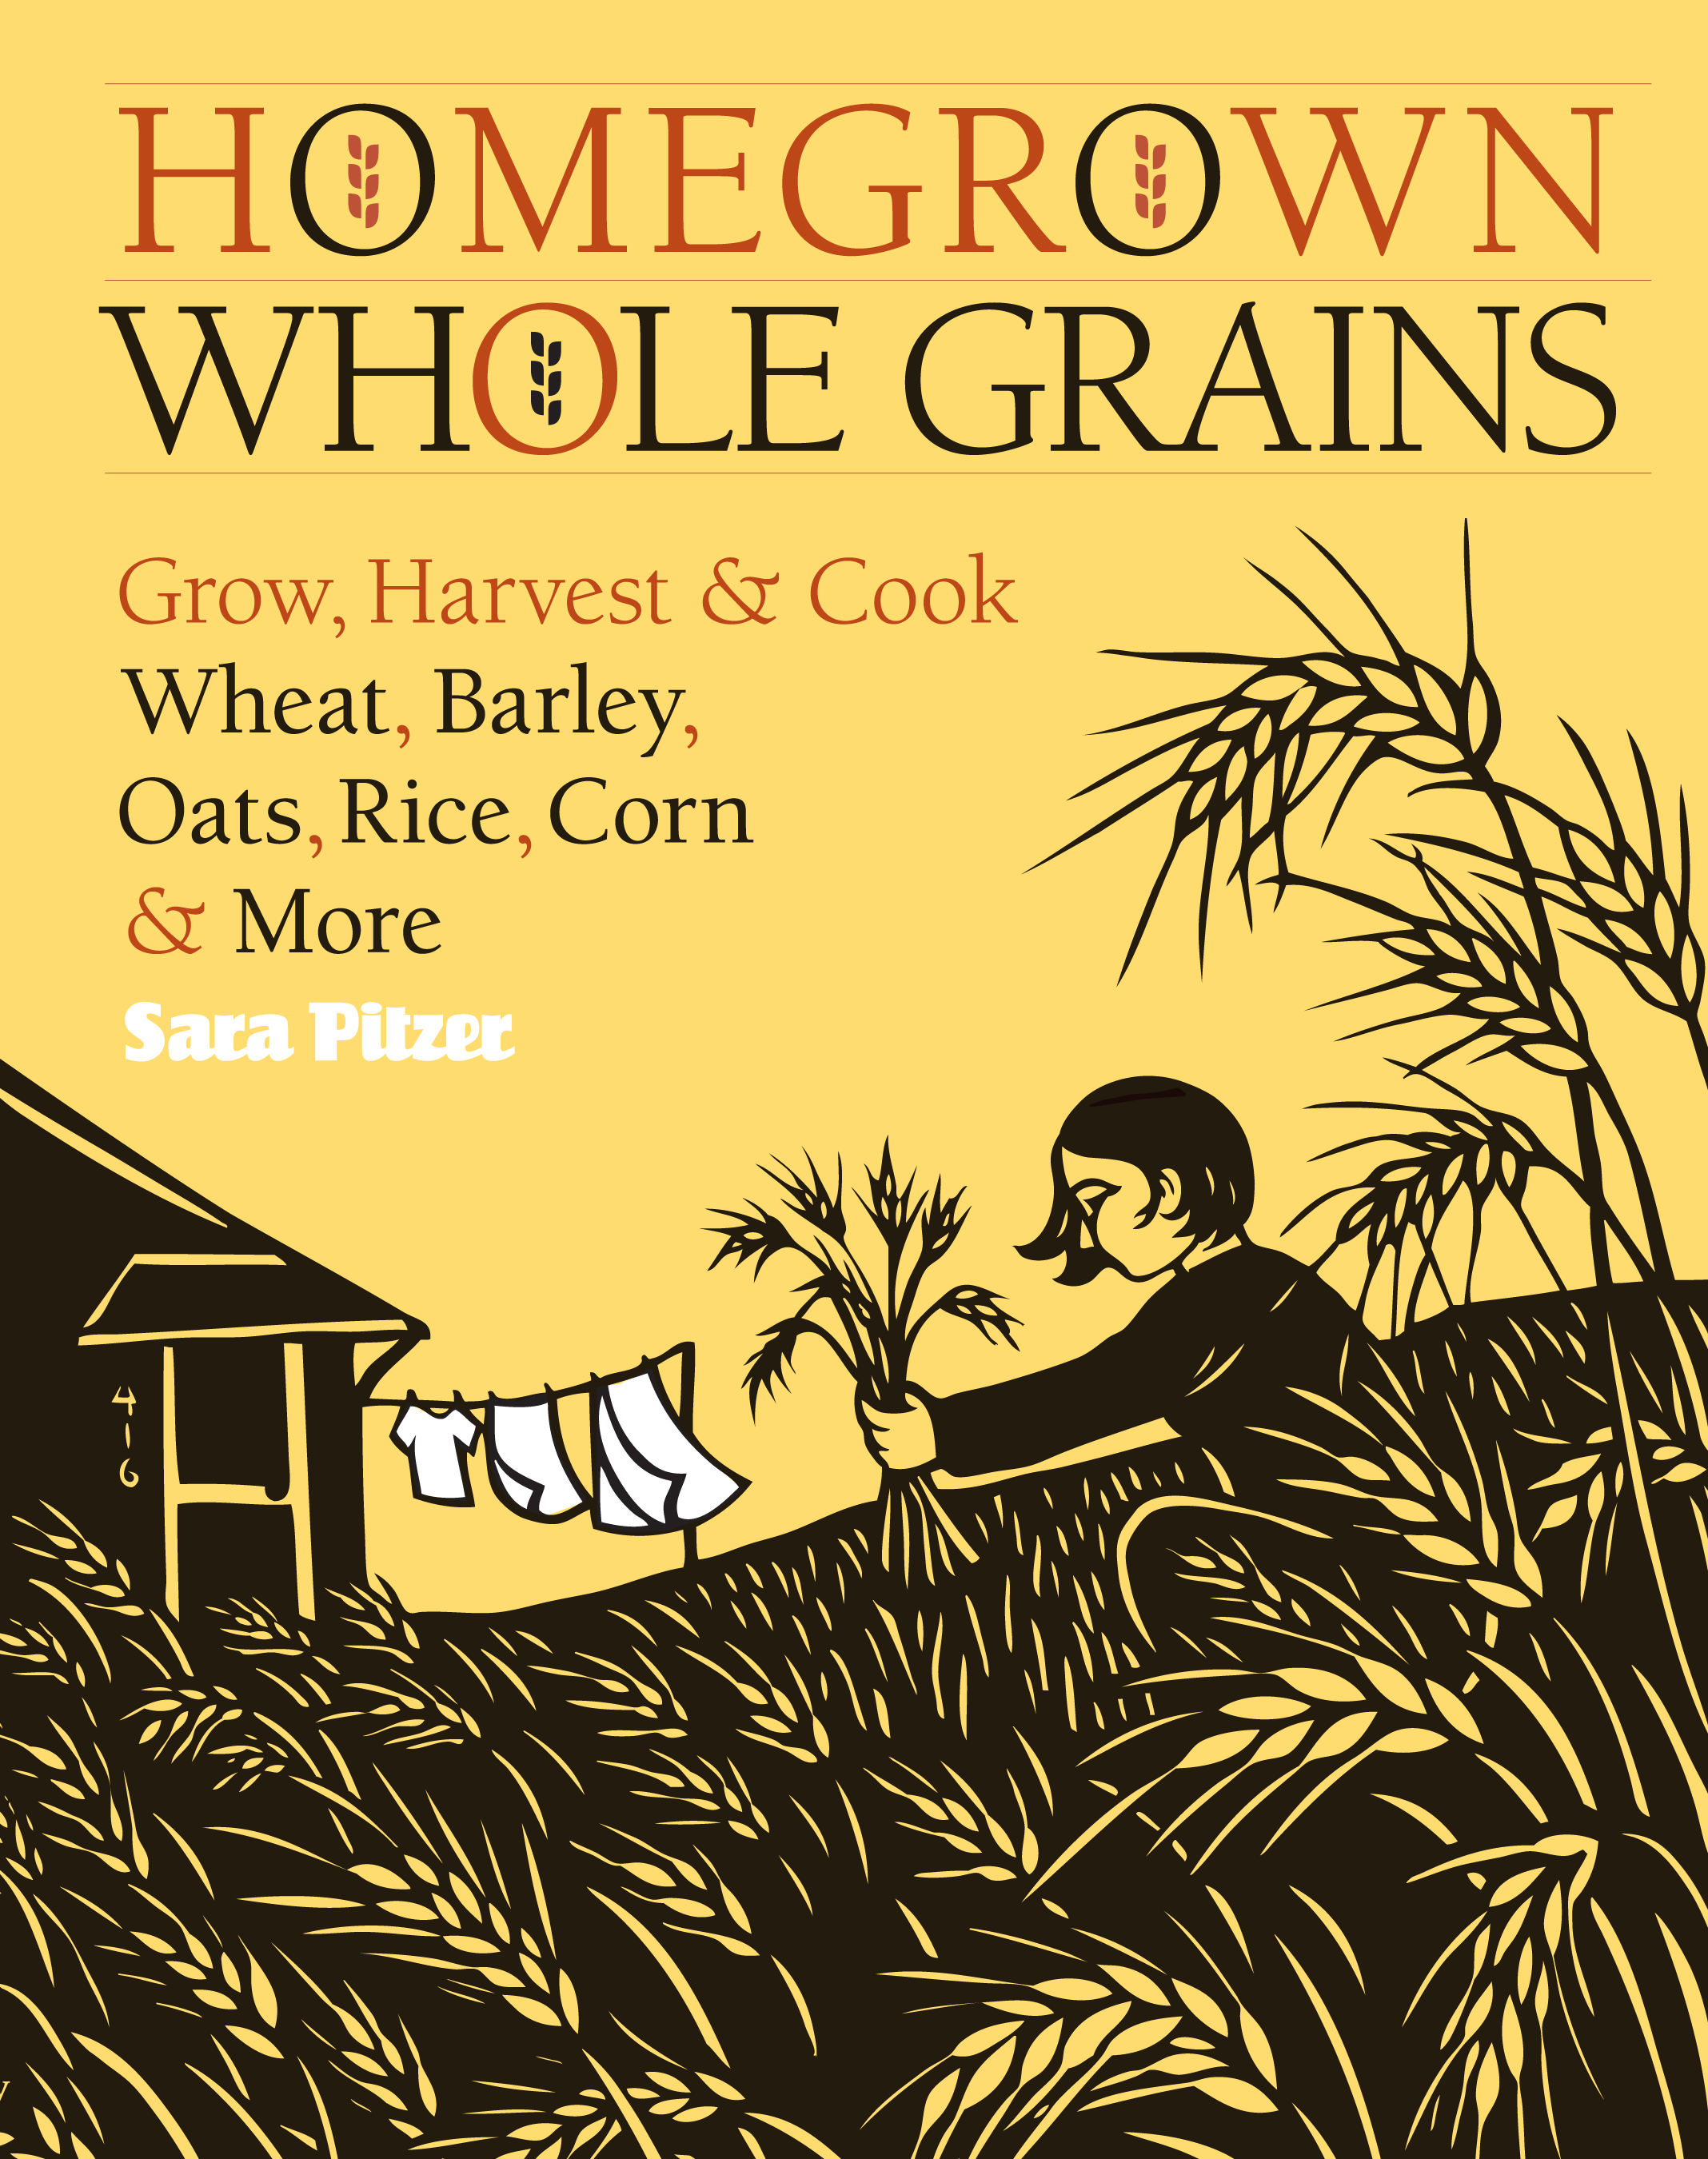 Homegrown Whole Grains Grow, Harvest, and Cook Wheat, Barley, Oats, Rice, Corn and More - Sara Pitzer